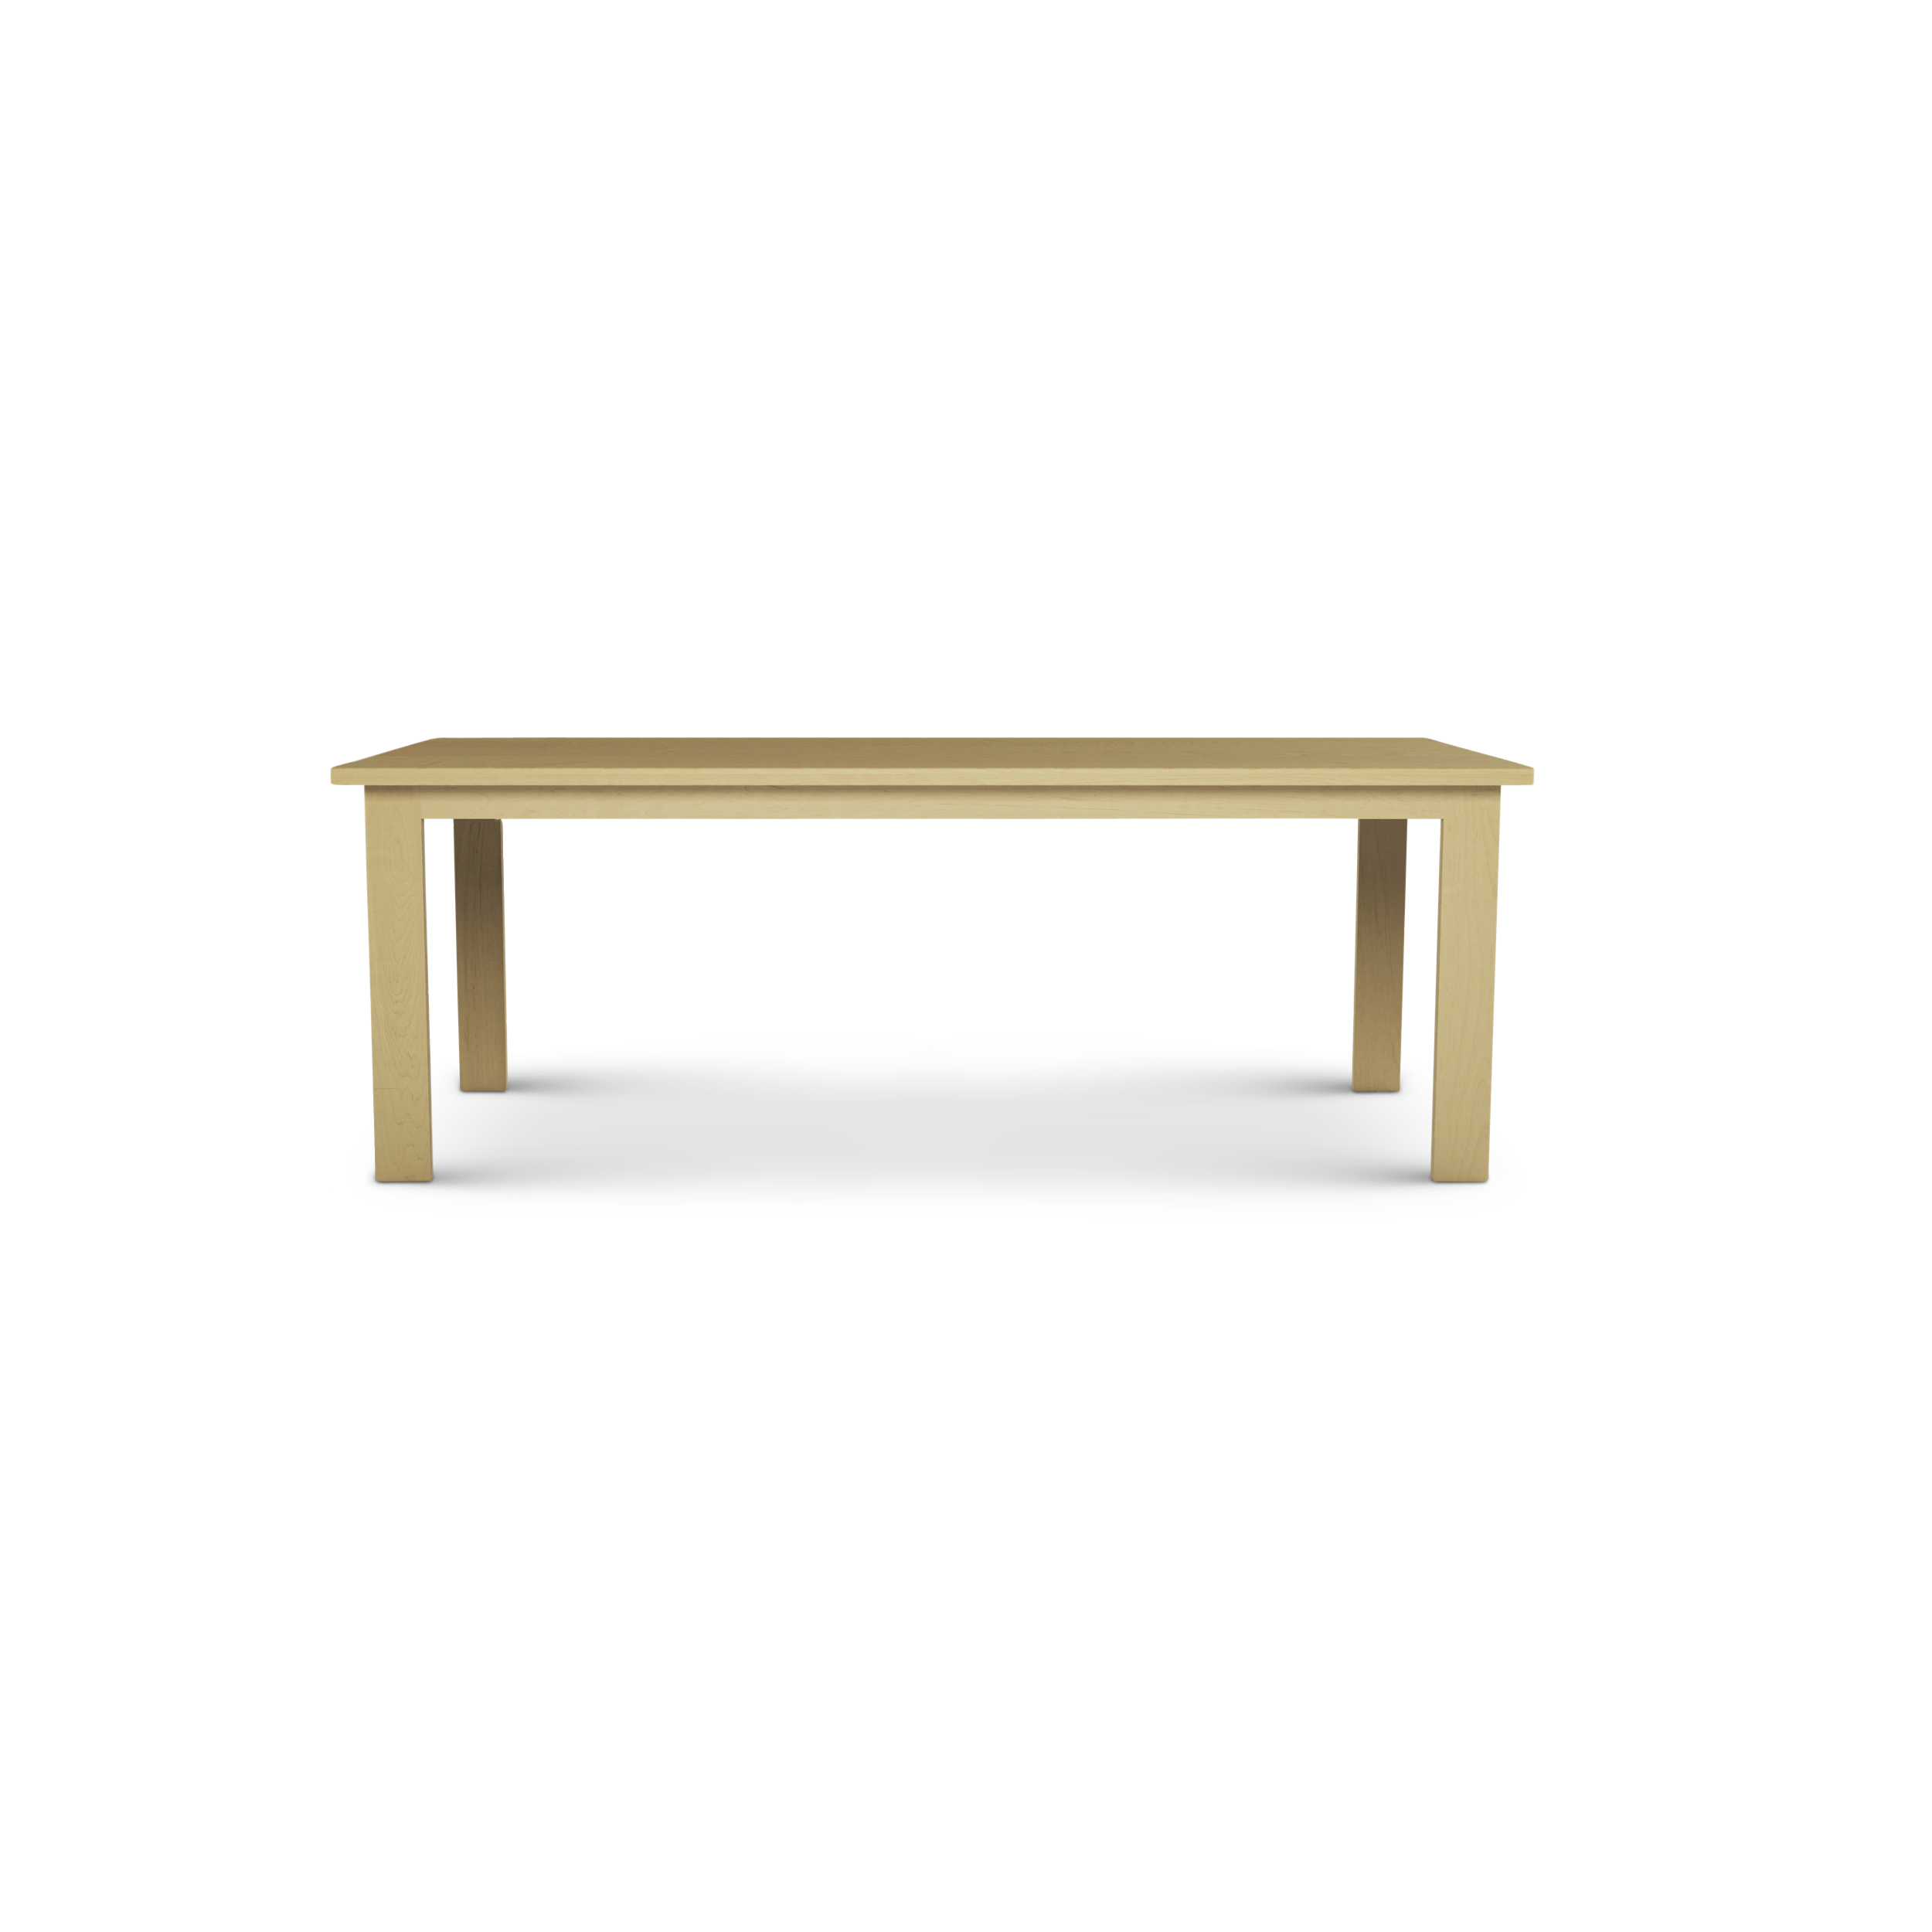 Series 424 84″ Table